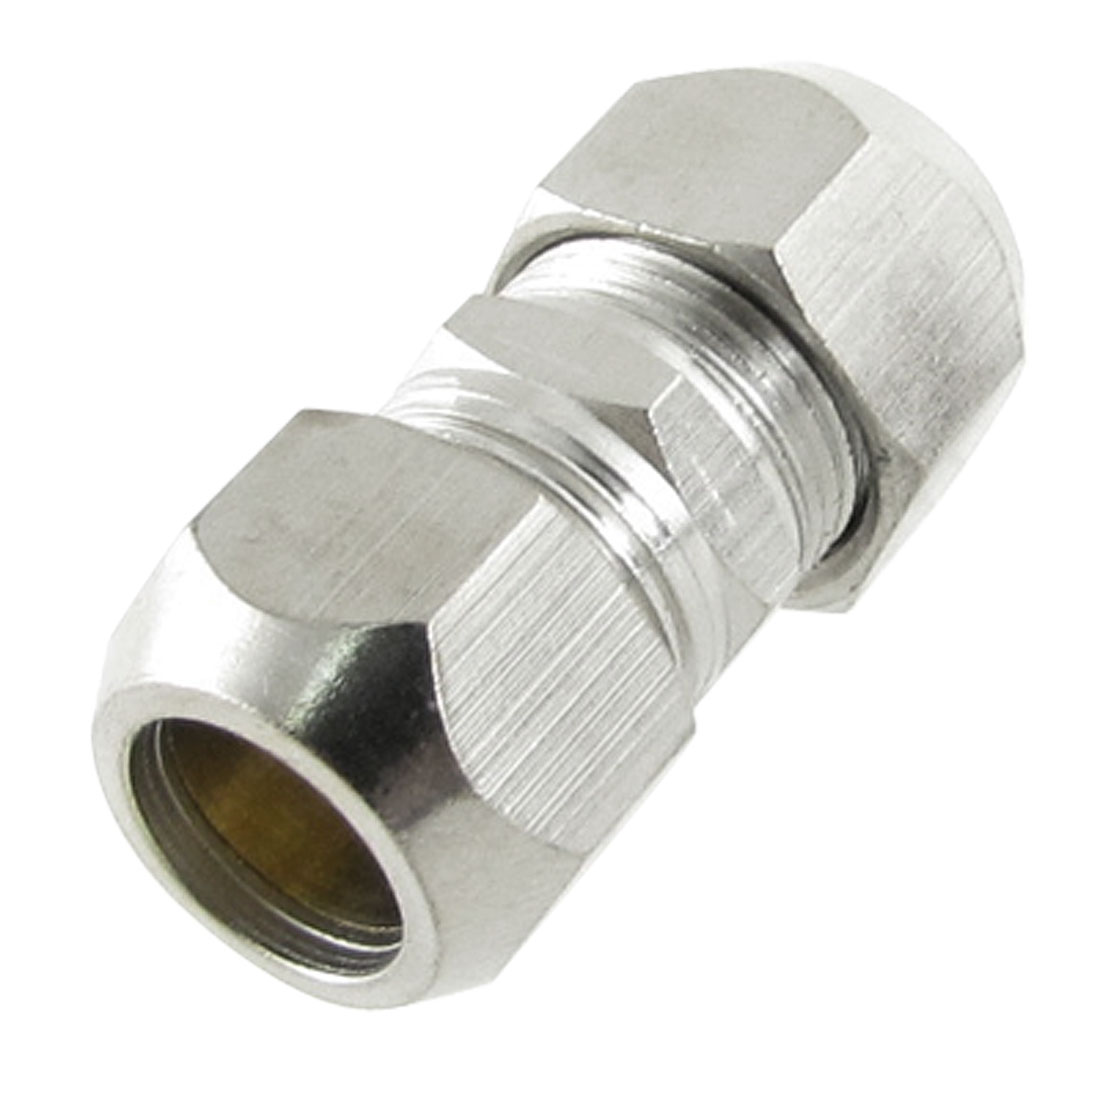 "2/5"" 10mm Air Hose Tube Pneumatic Compression Fitting Coupler Coupling"